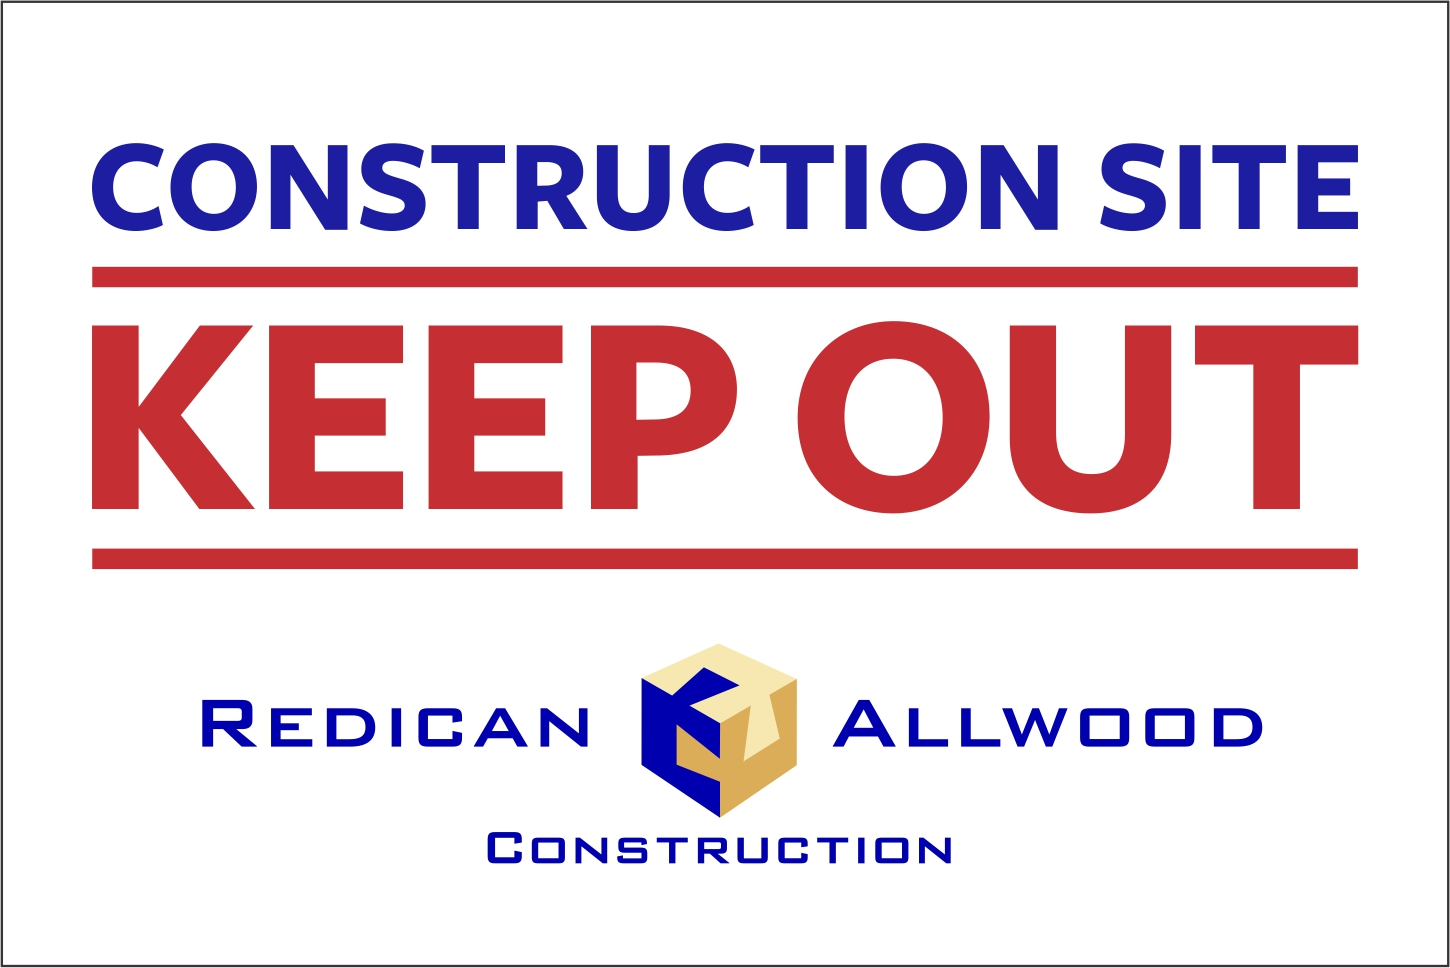 Custom Construction Corflute Sign